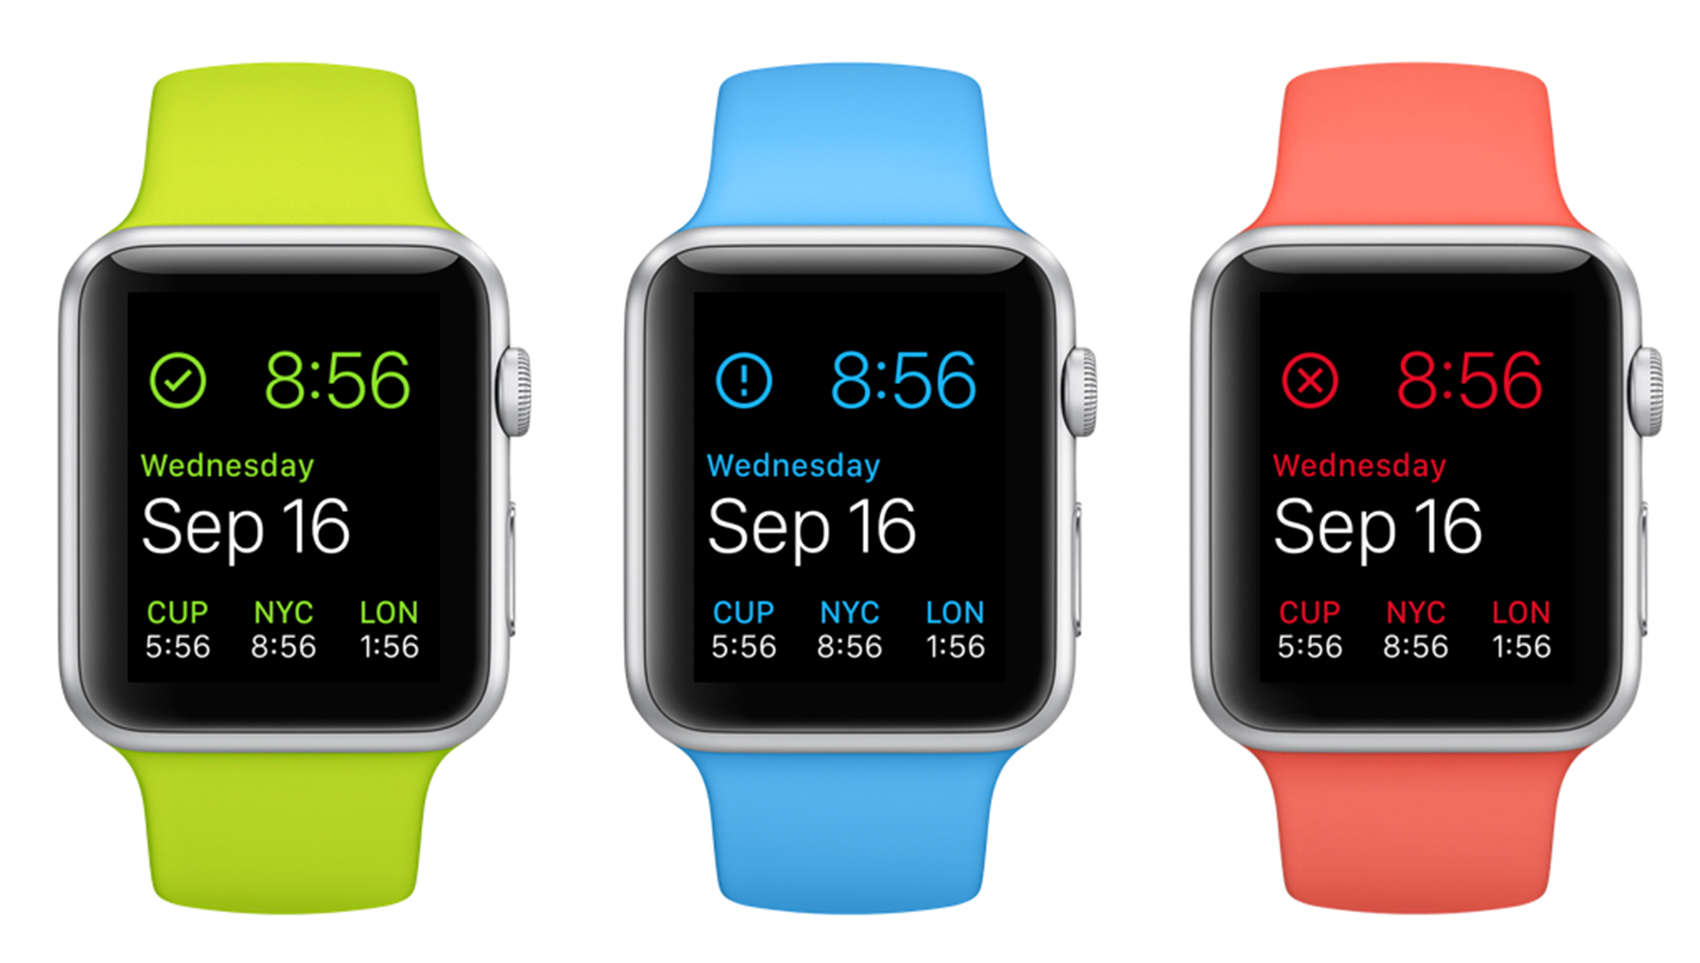 The DataMan complication, as seen in the upper left of these Apple Watches, monitors your data usage.